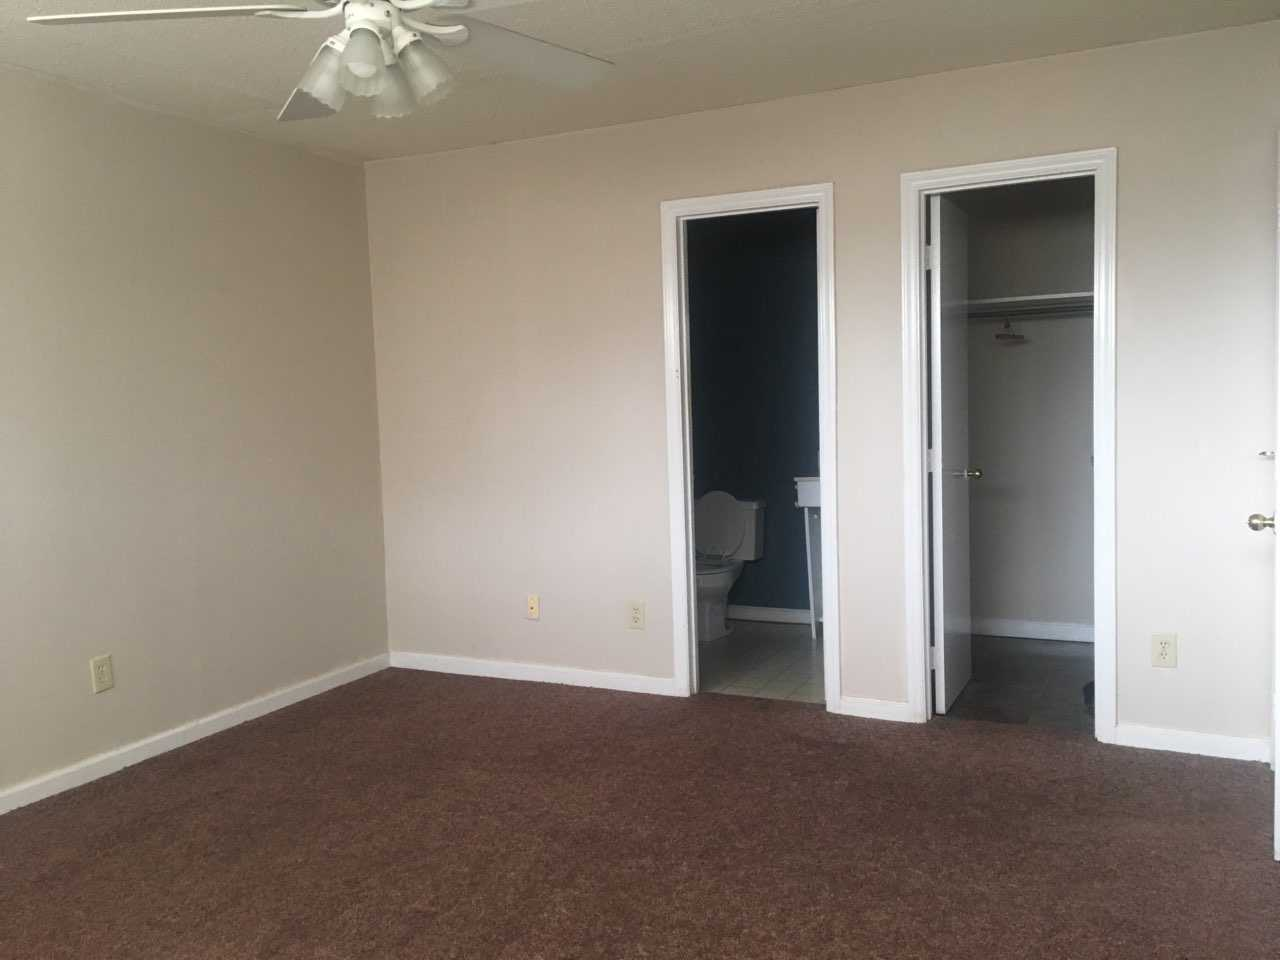 Image of 302-3 Park Avenue Raleigh, NC 27605